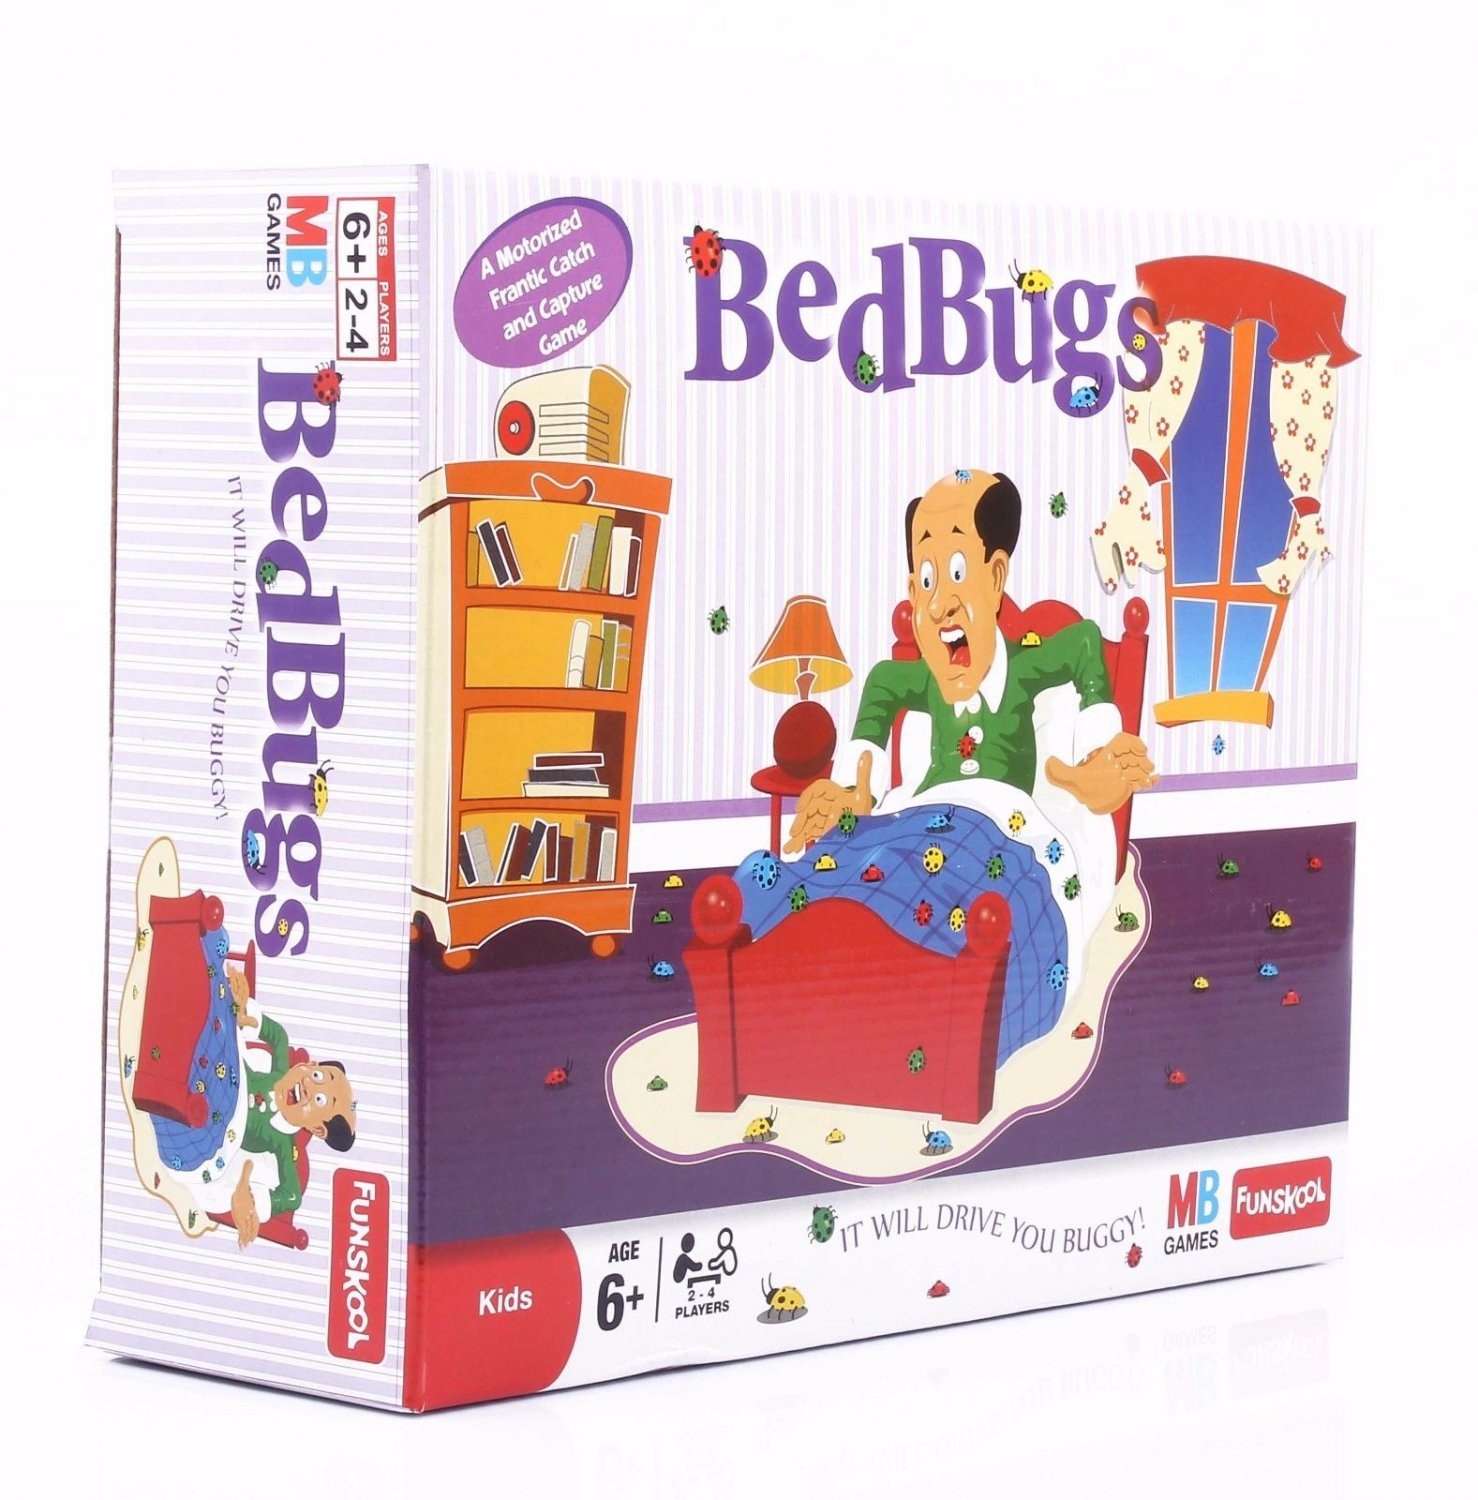 Funskool Bed Bugs Action Game Players 2-4 Players Age 6+